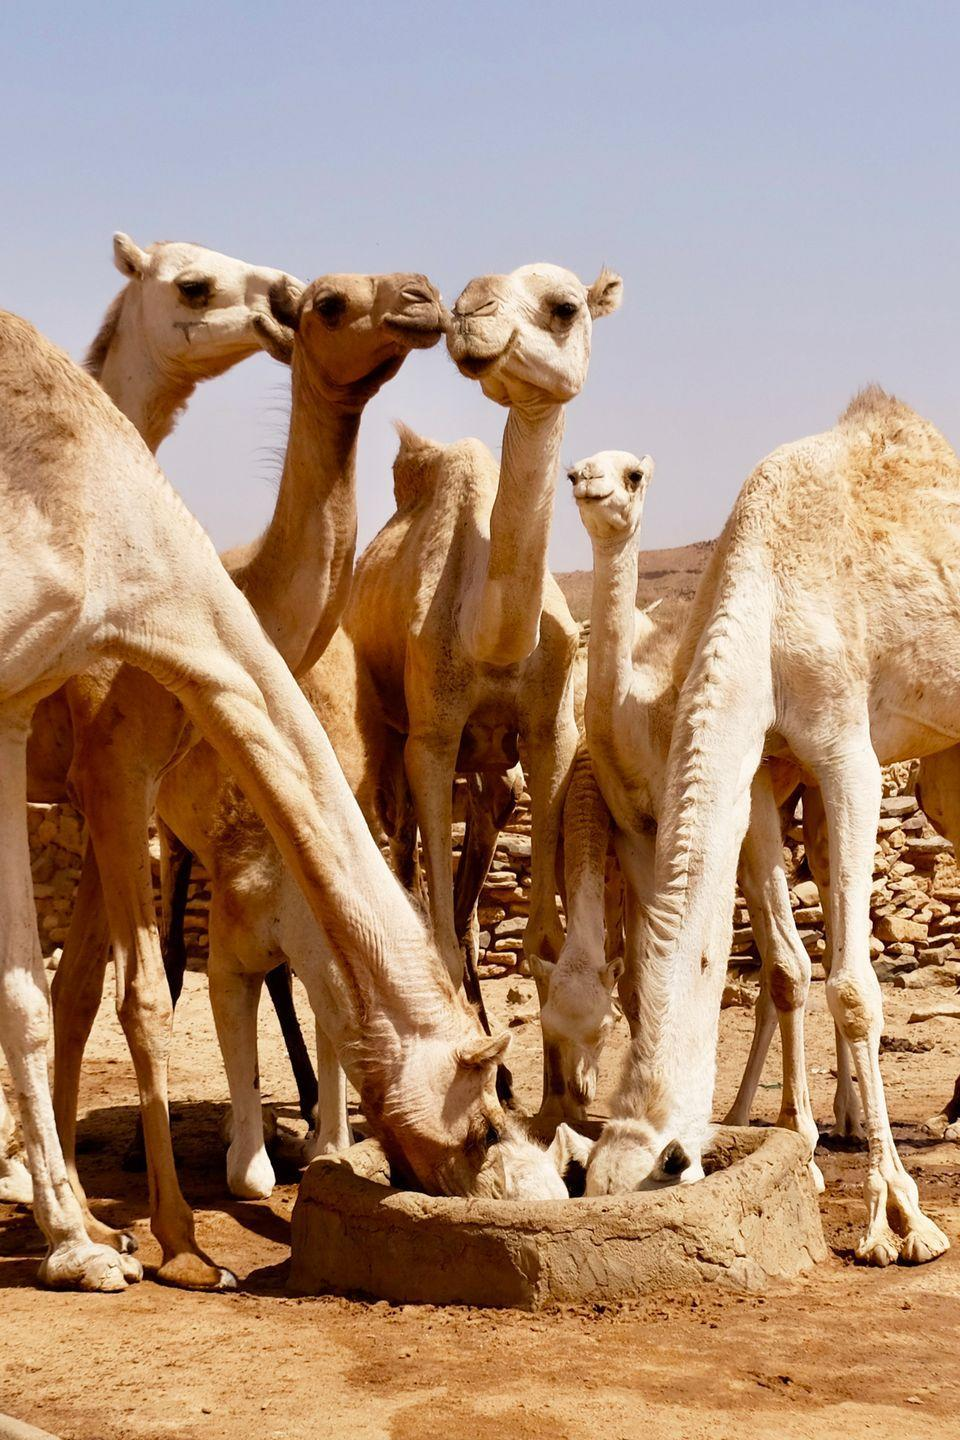 <p>Camels live in one of the most arid environments on Earth, adapted to travel great lengths through deserts. That means they've become masters at remaining hydrated with limited water resources. When they do drink water, they're capable of guzzling 30 gallons in under 15 minutes.</p>